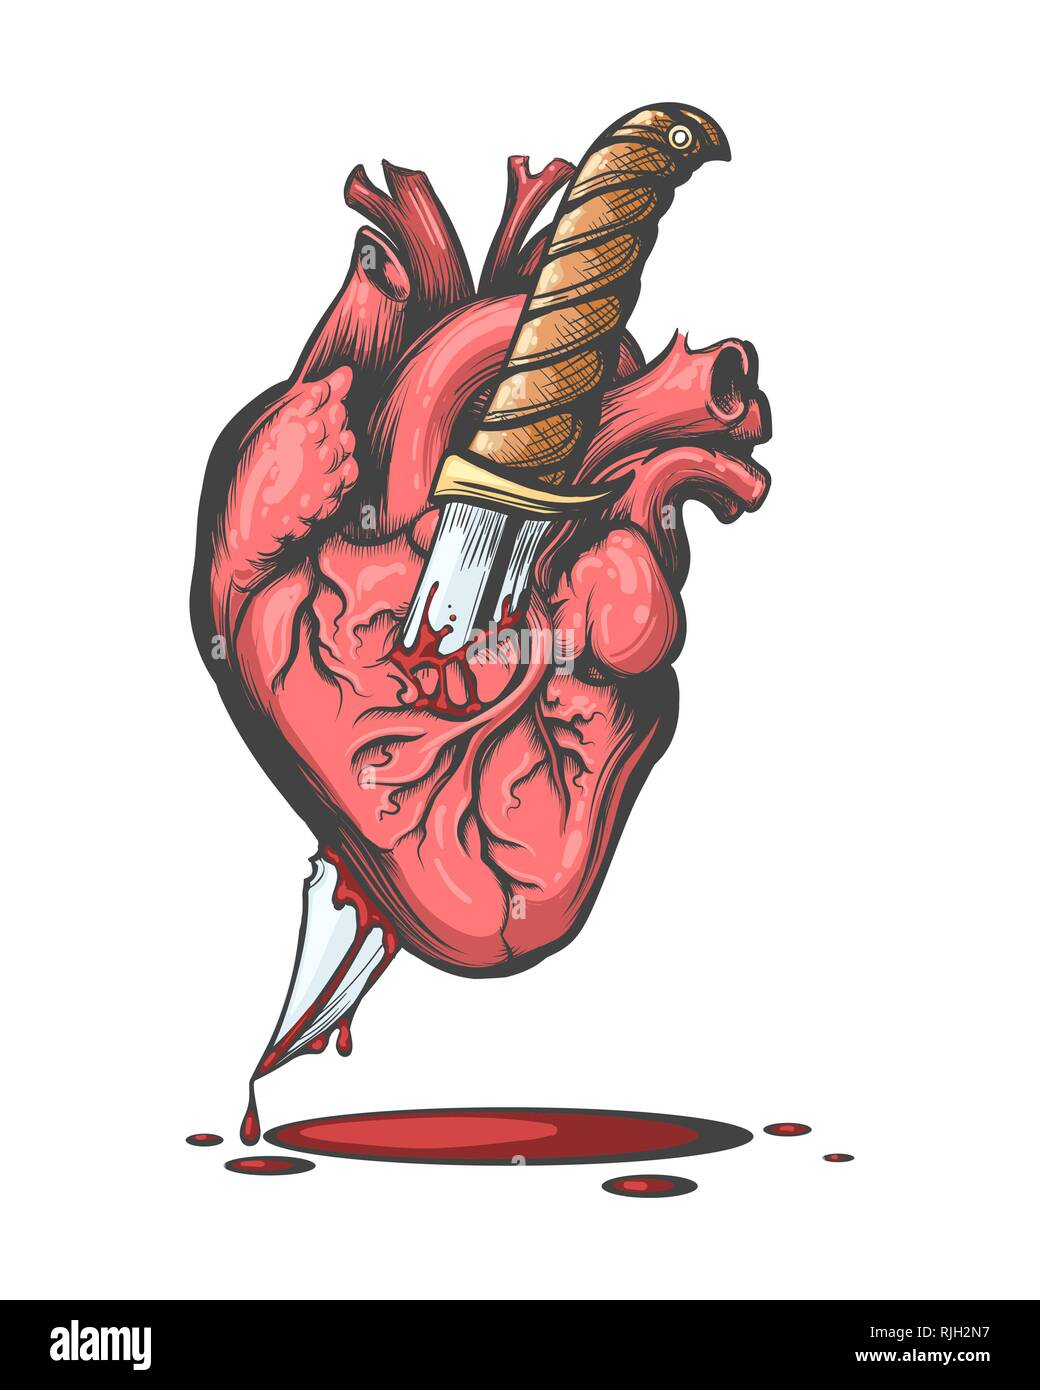 Bleeding Human Heart Pierced by Knife drawn in tattoo style. Vector illustration. - Stock Vector